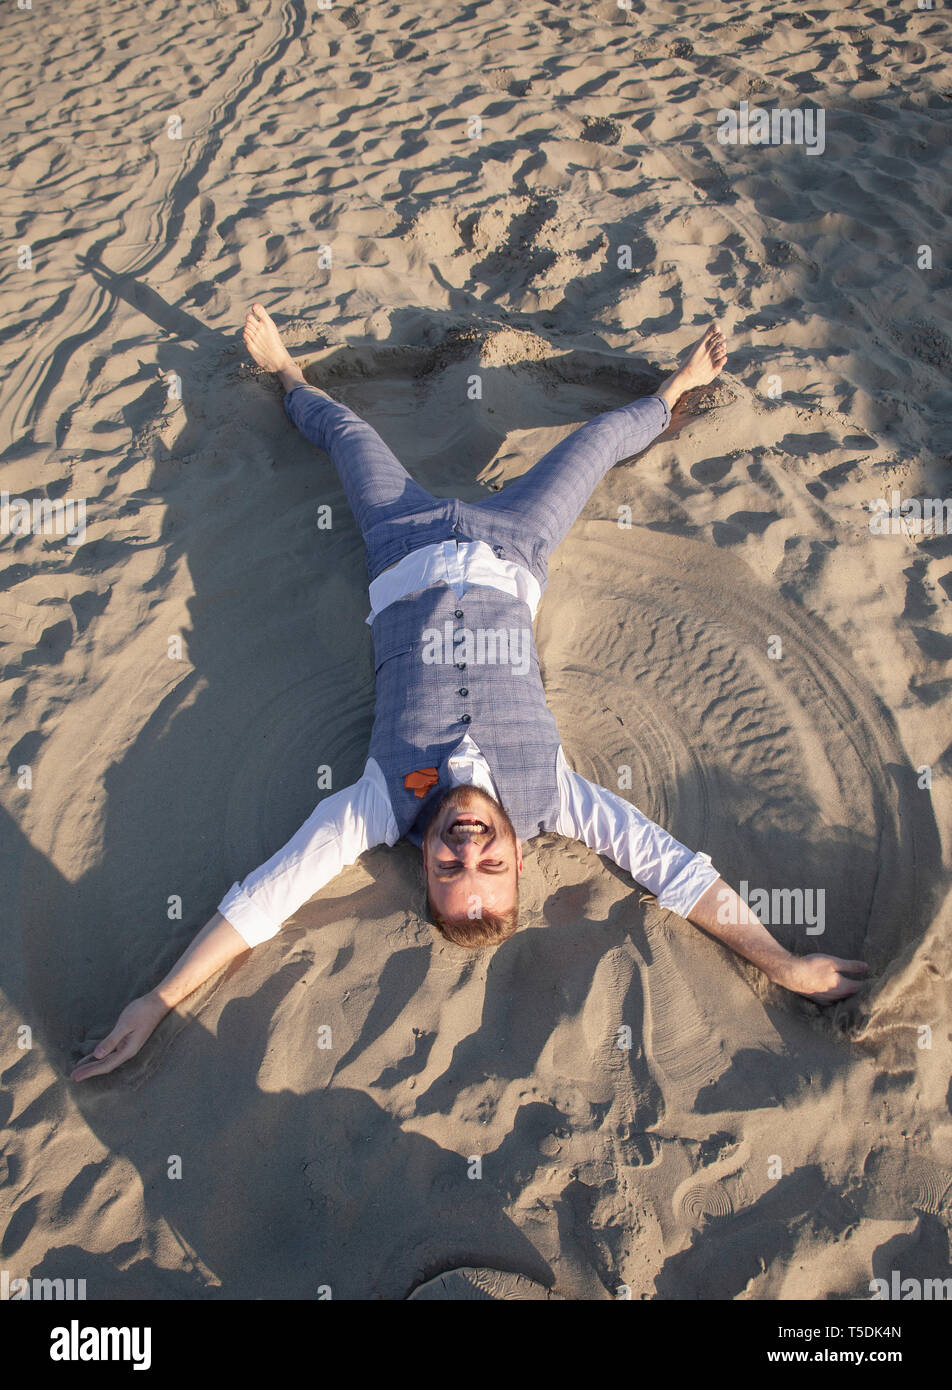 one young man, doing sand angel on beach. wearing formal wear, smiling to camera. - Stock Image